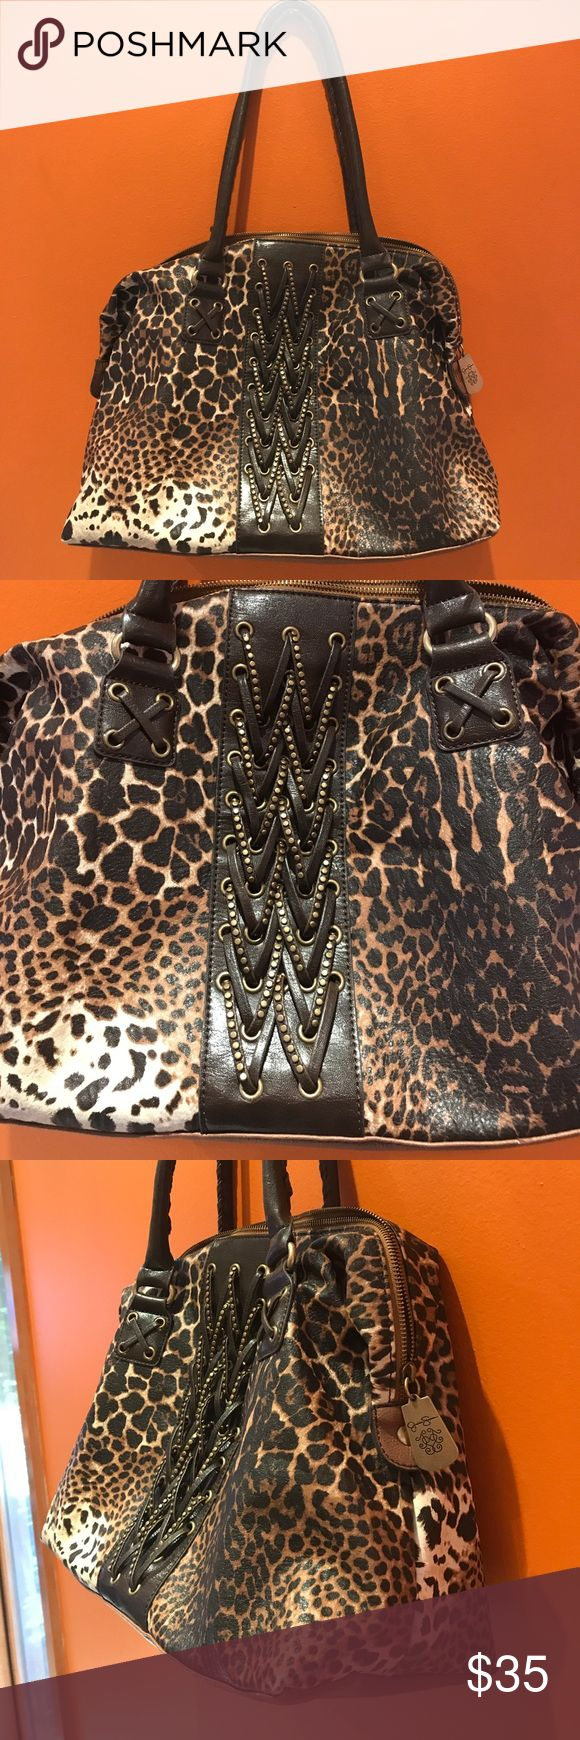 """JESSICA SIMPSON LARGE ANIMAL PRINT TOTE BAG JESSICA SIMPSON LARGE ANIMAL PRINT TOTE BAG. Handle drop 10"""". H 12"""" W15"""" D6"""". In great condition. Jessica Simpson Bags"""